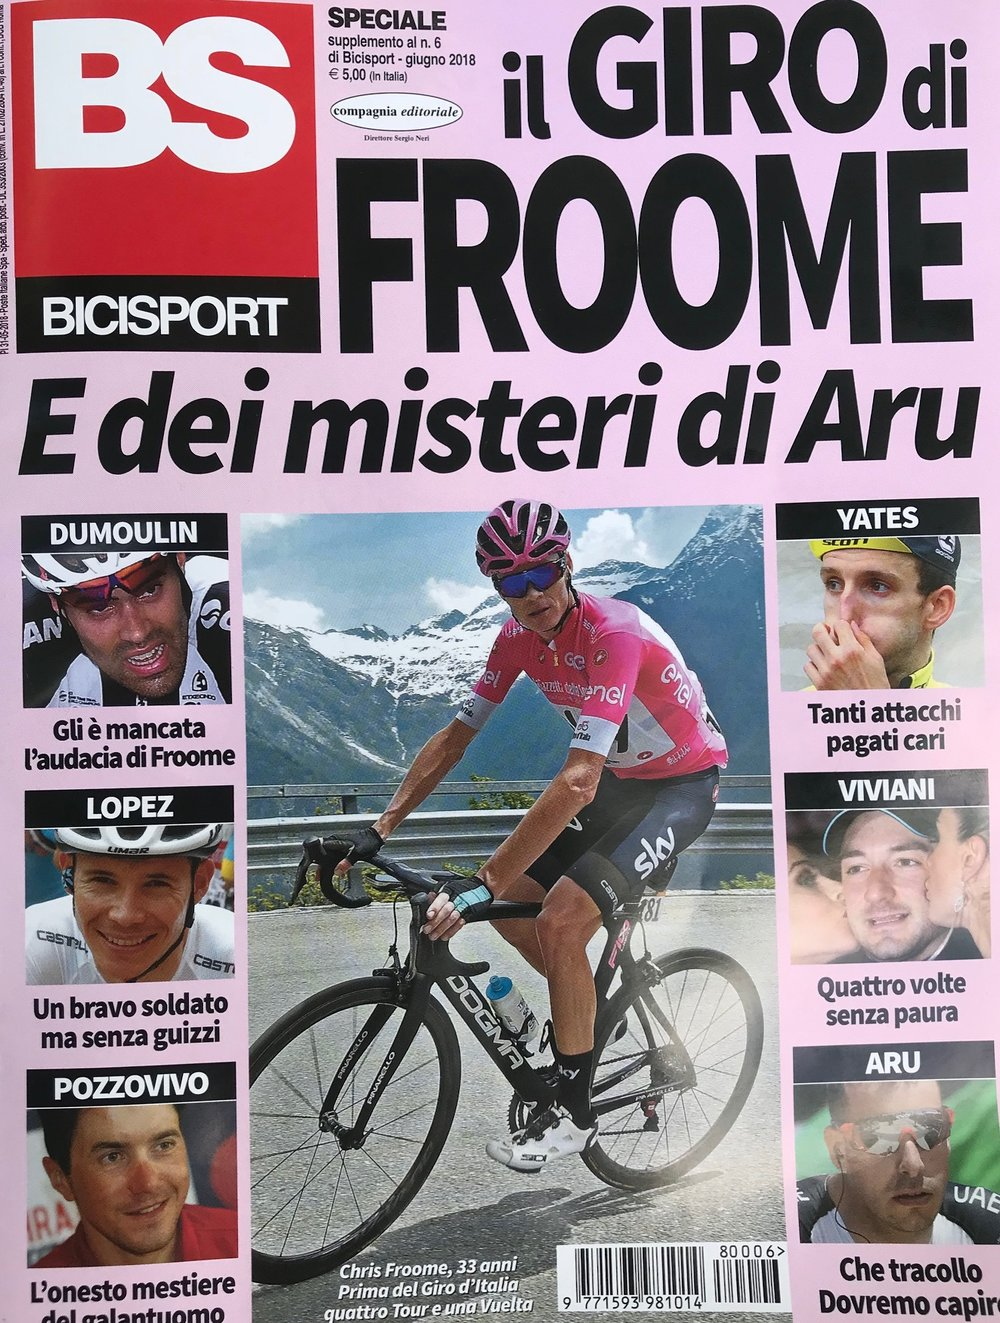 The latest BiciSport magazine highlights the Chris Froome victory at the recent Giro d'Italia